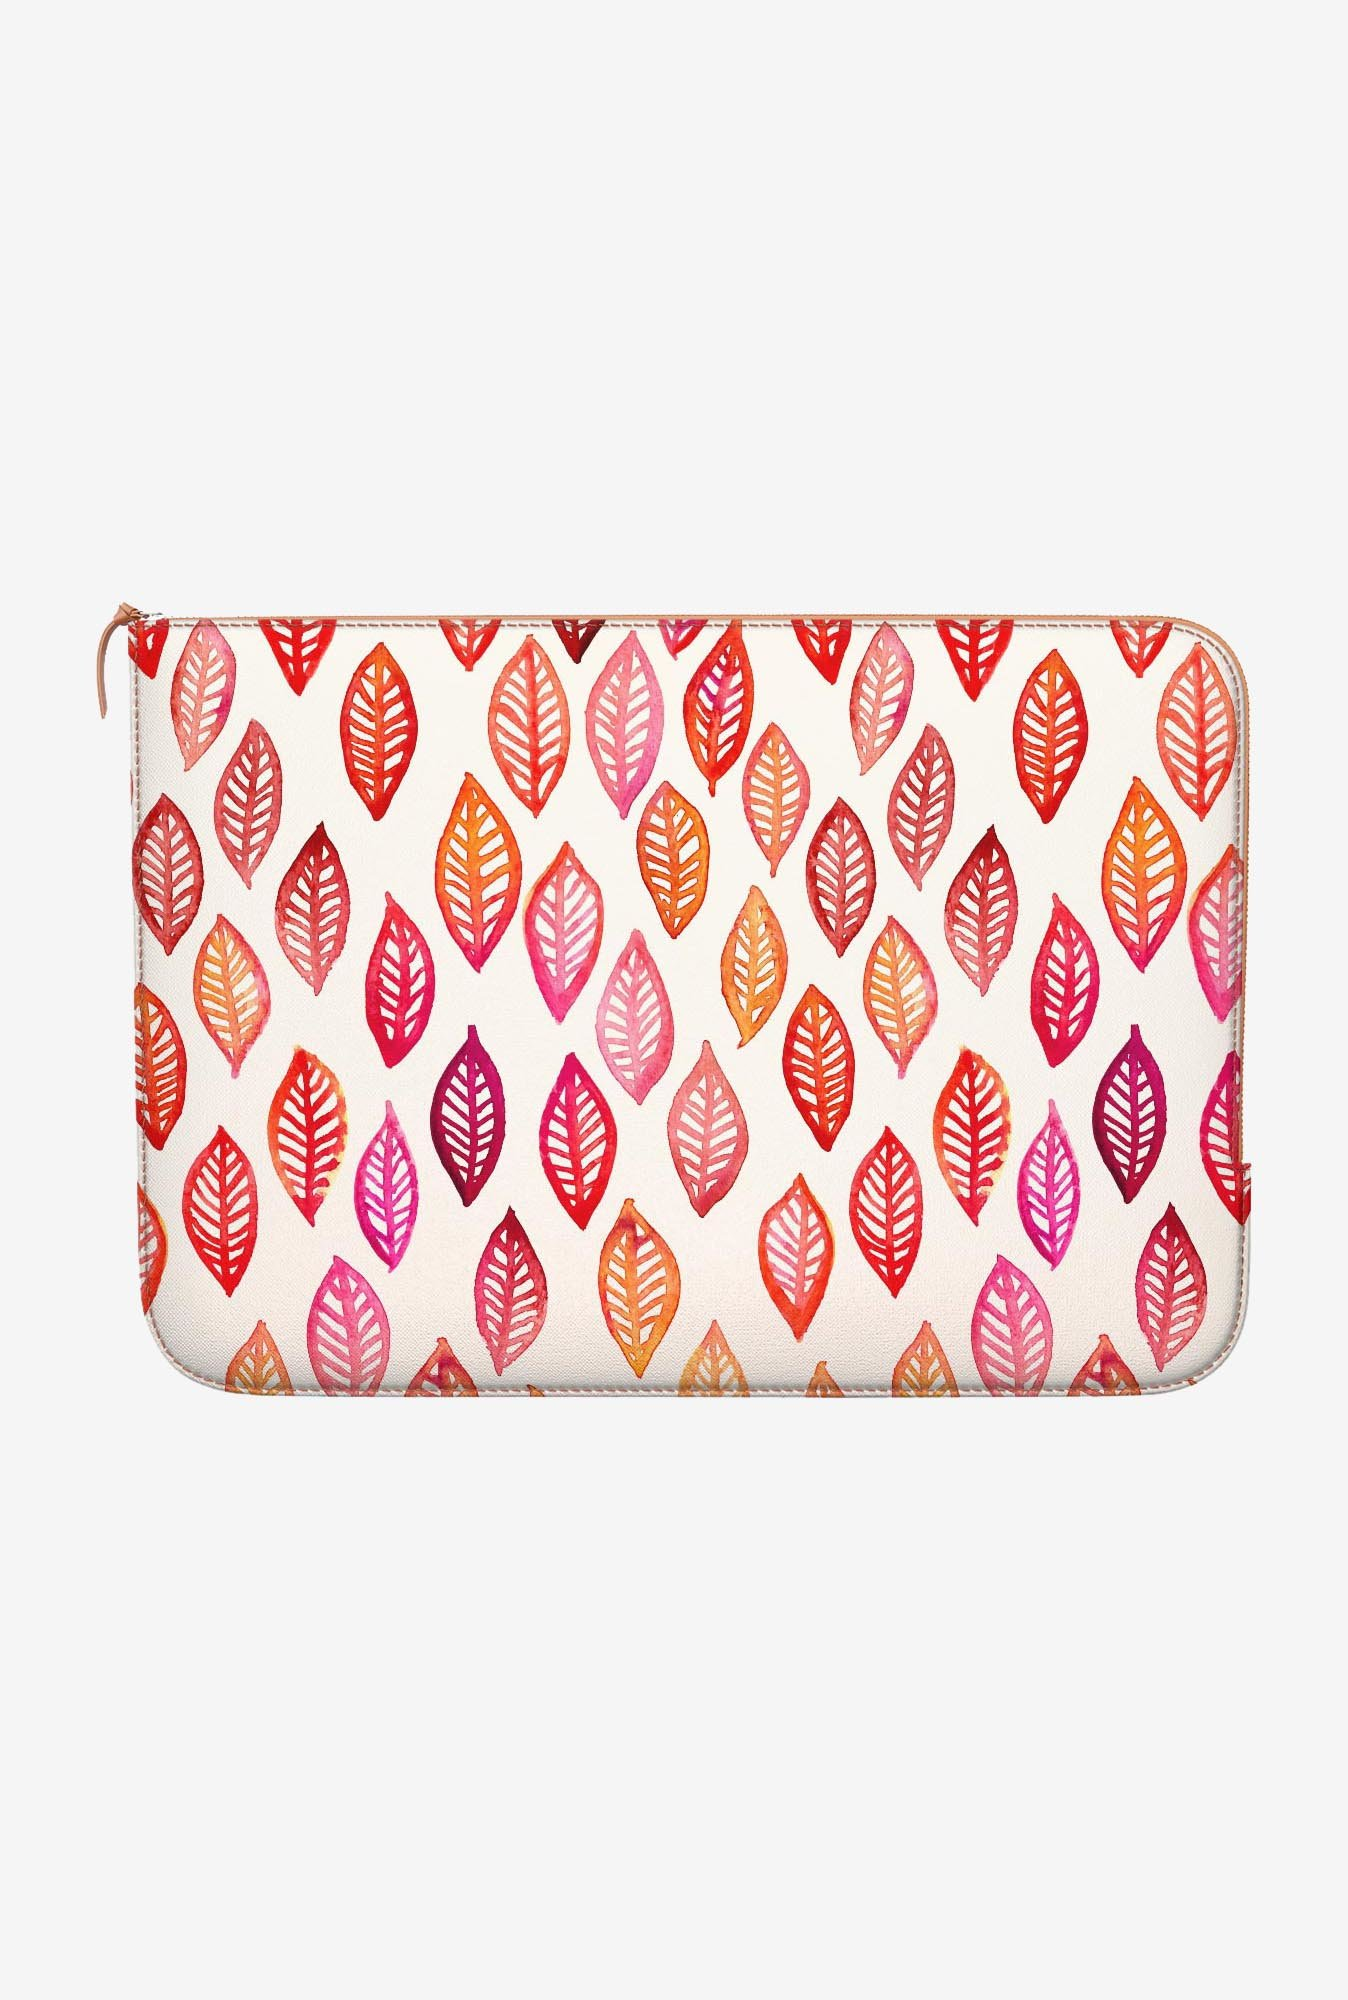 DailyObjects Autumn Leaves MacBook Air 13 Zippered Sleeve